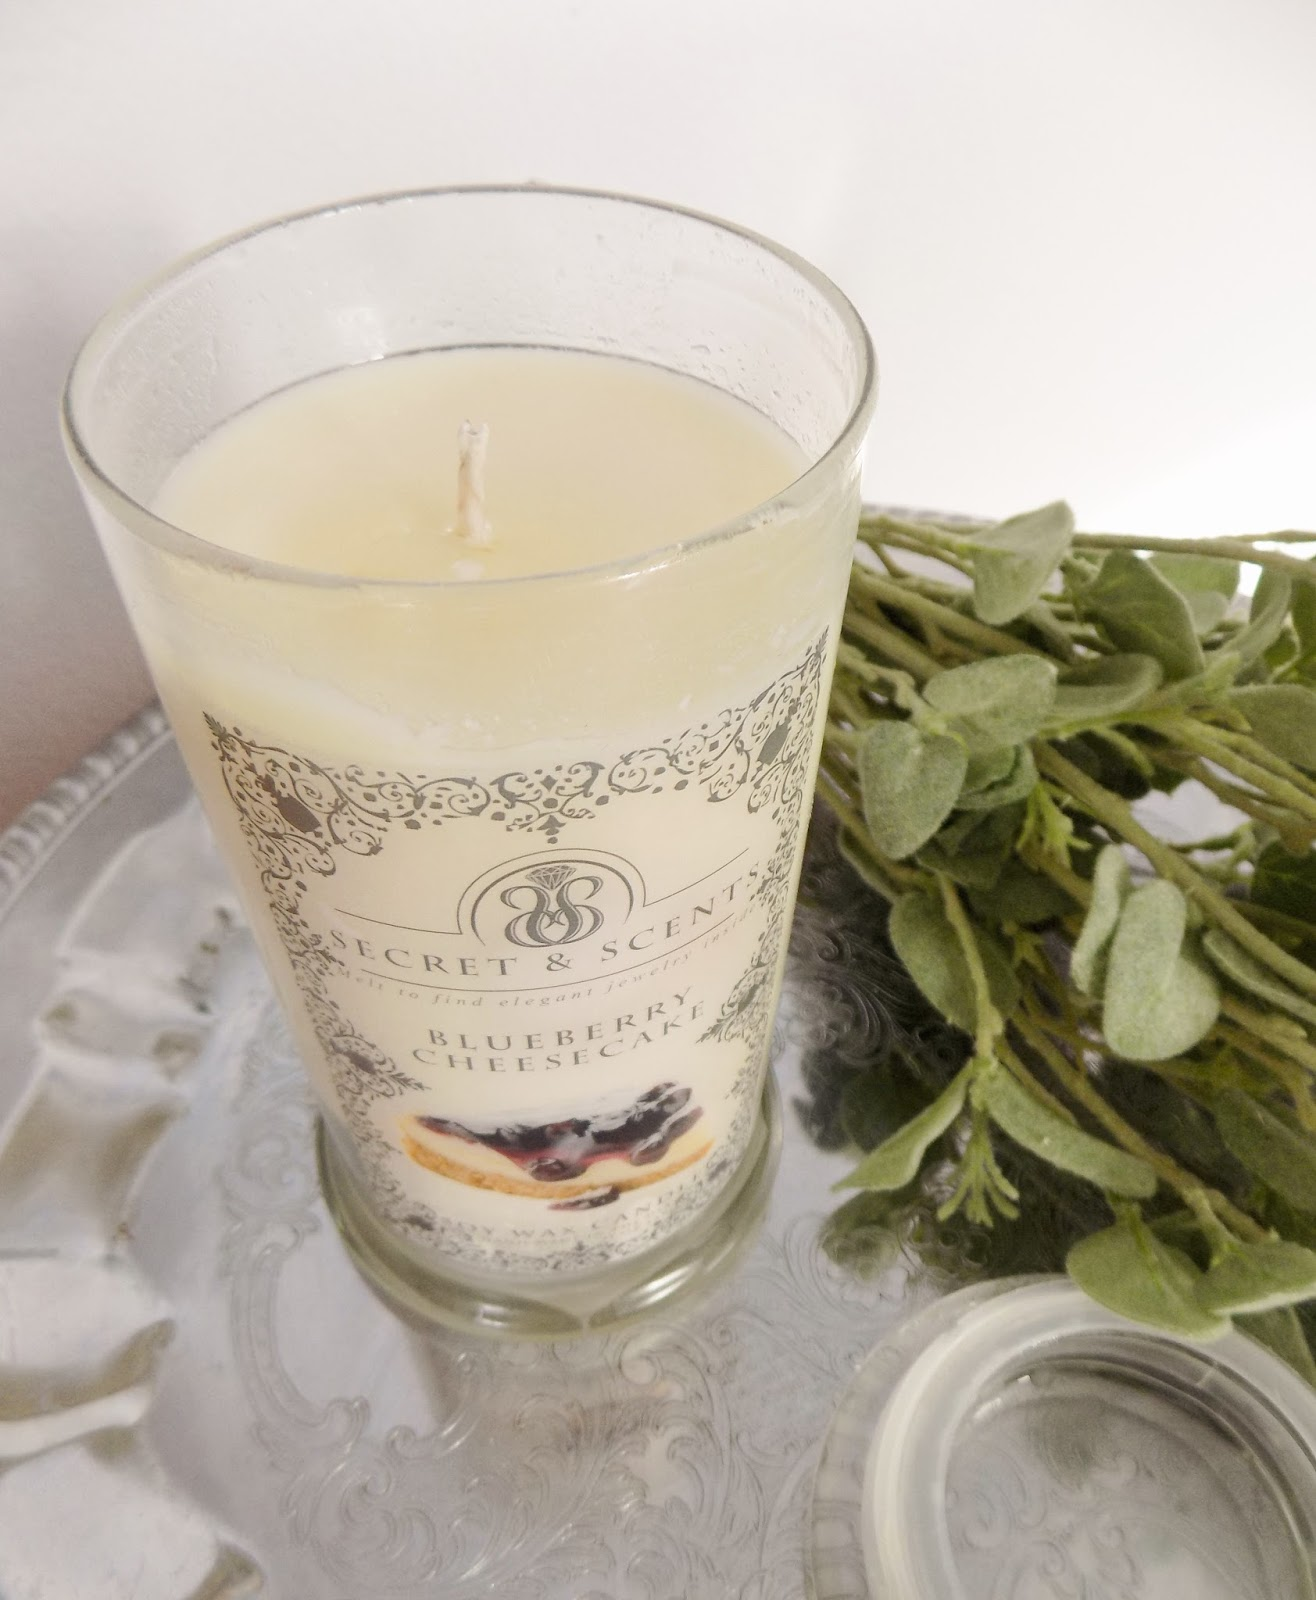 Most Fragrant Candles The Quaint Sanctuary Secret And Scents Jewelry Candles